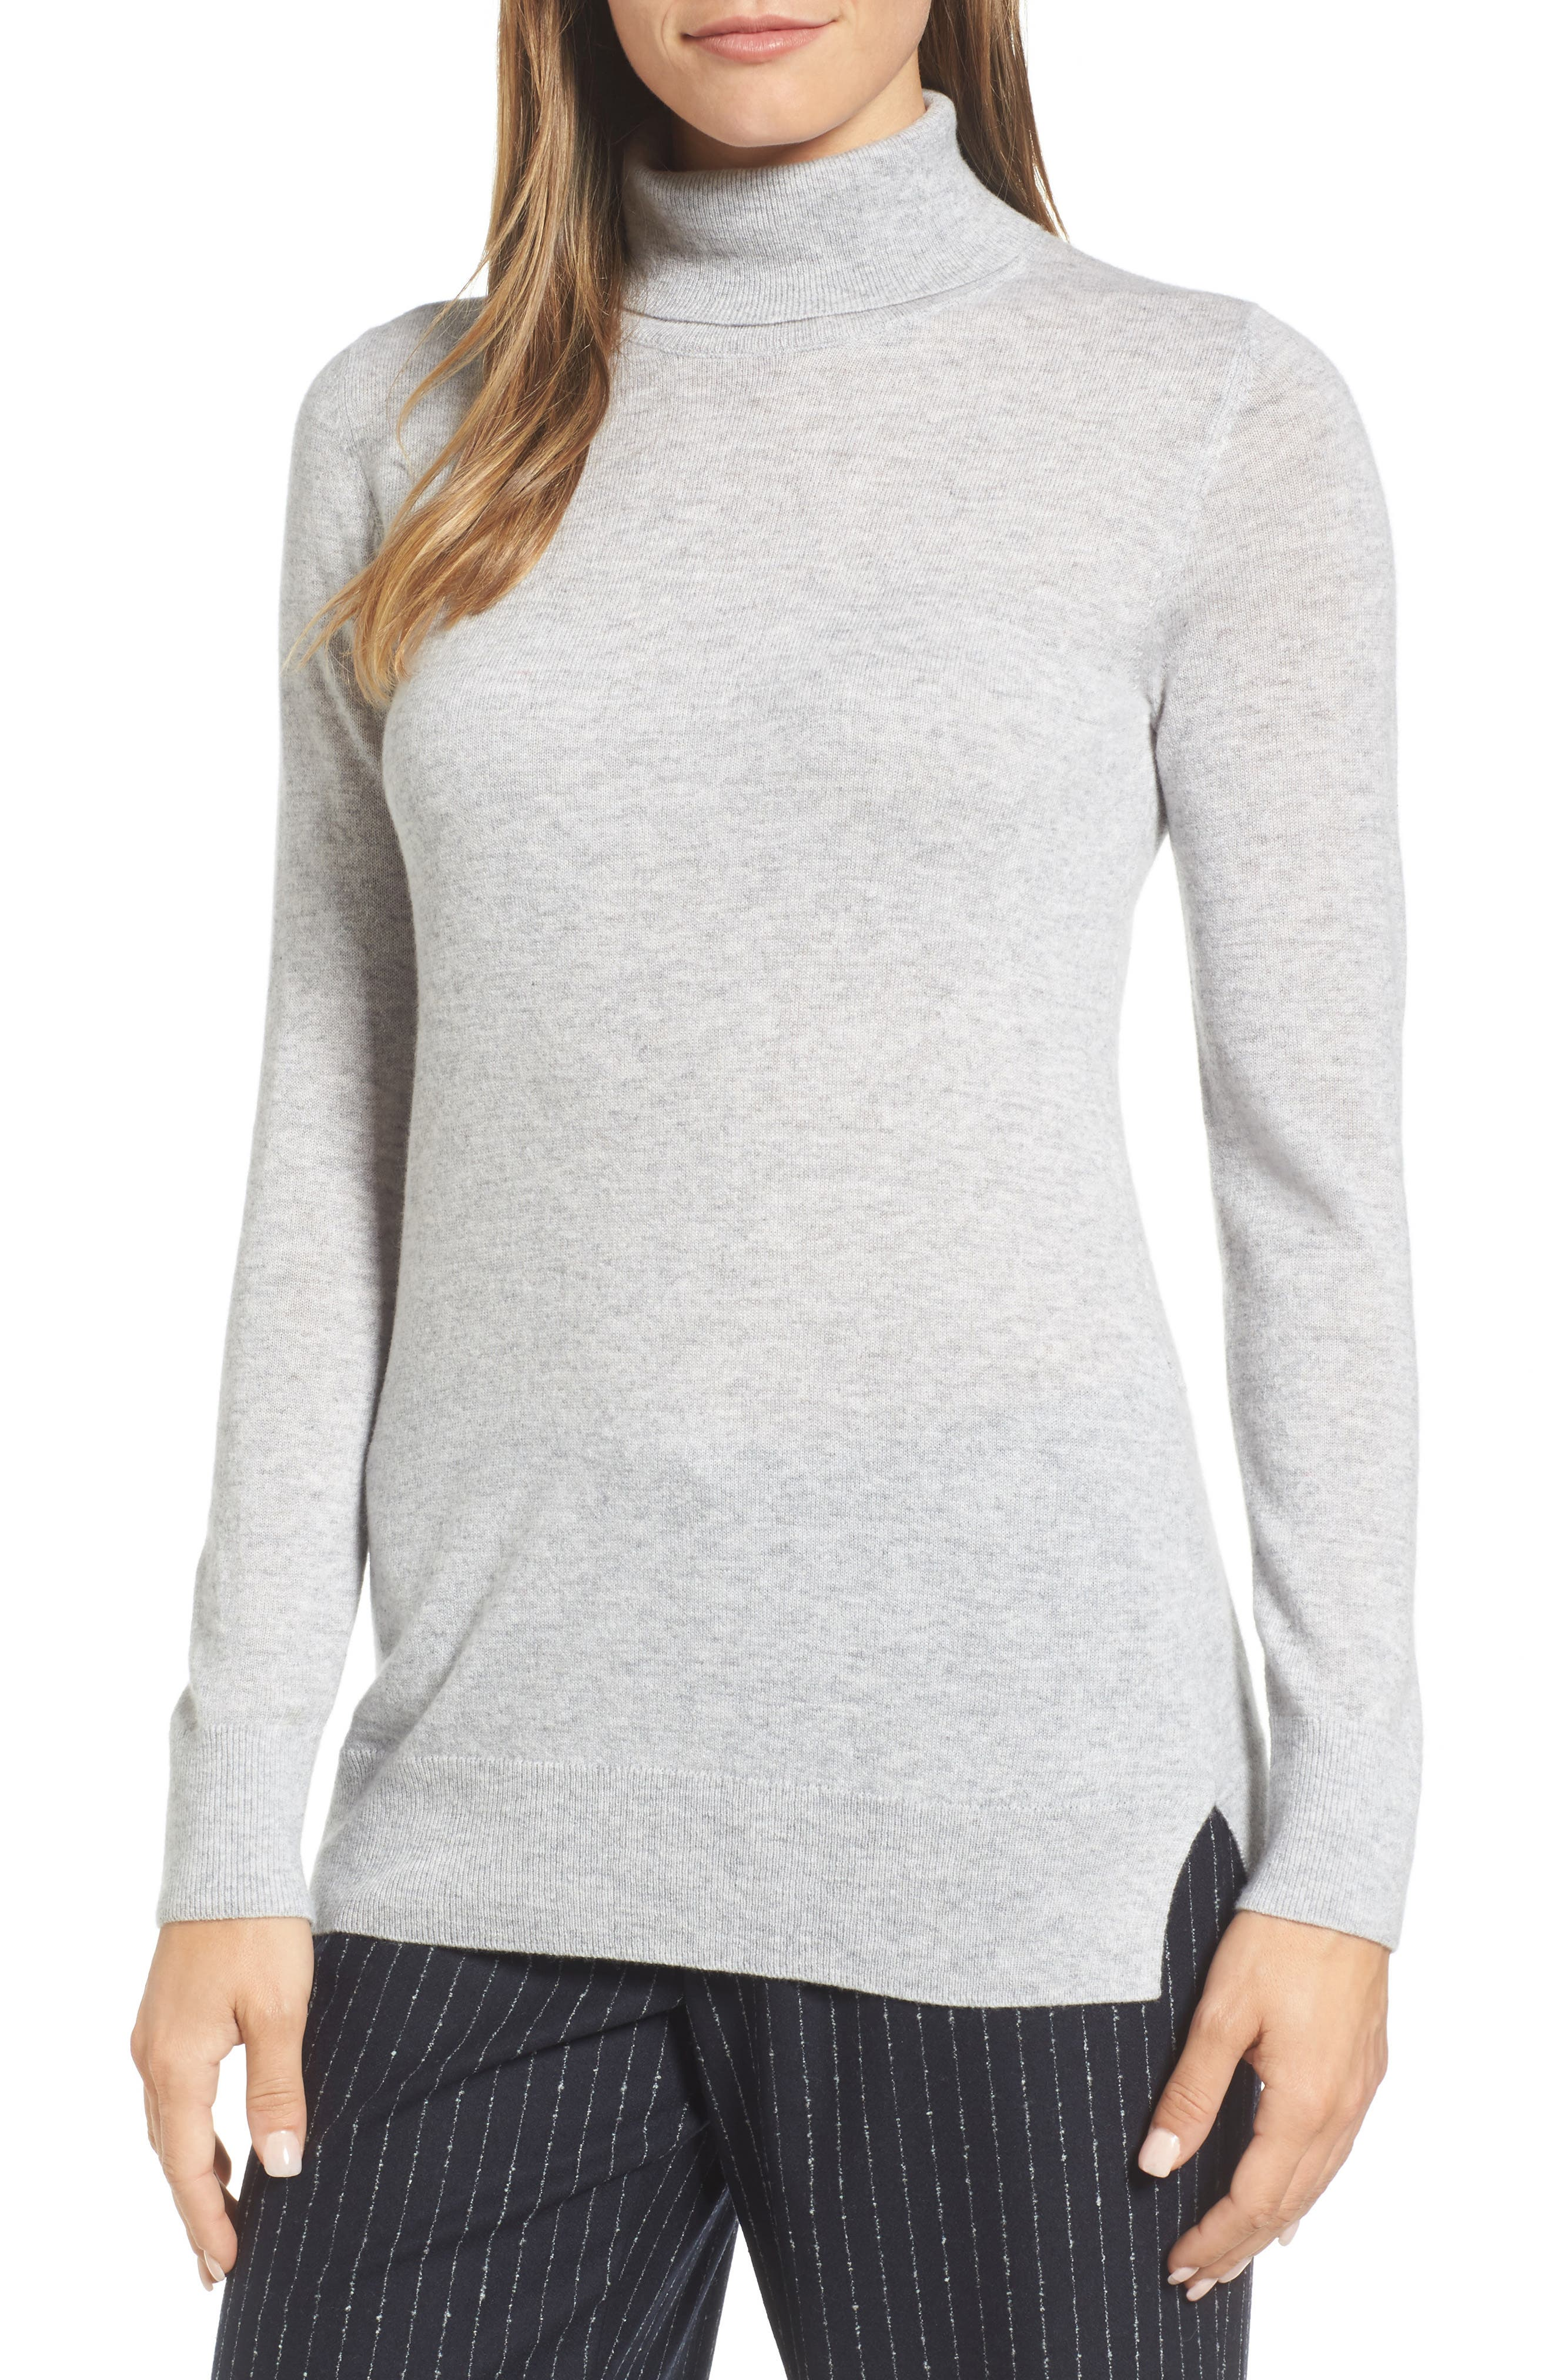 Turtleneck Cashmere Sweater,                             Main thumbnail 1, color,                             Grey Clay Heather